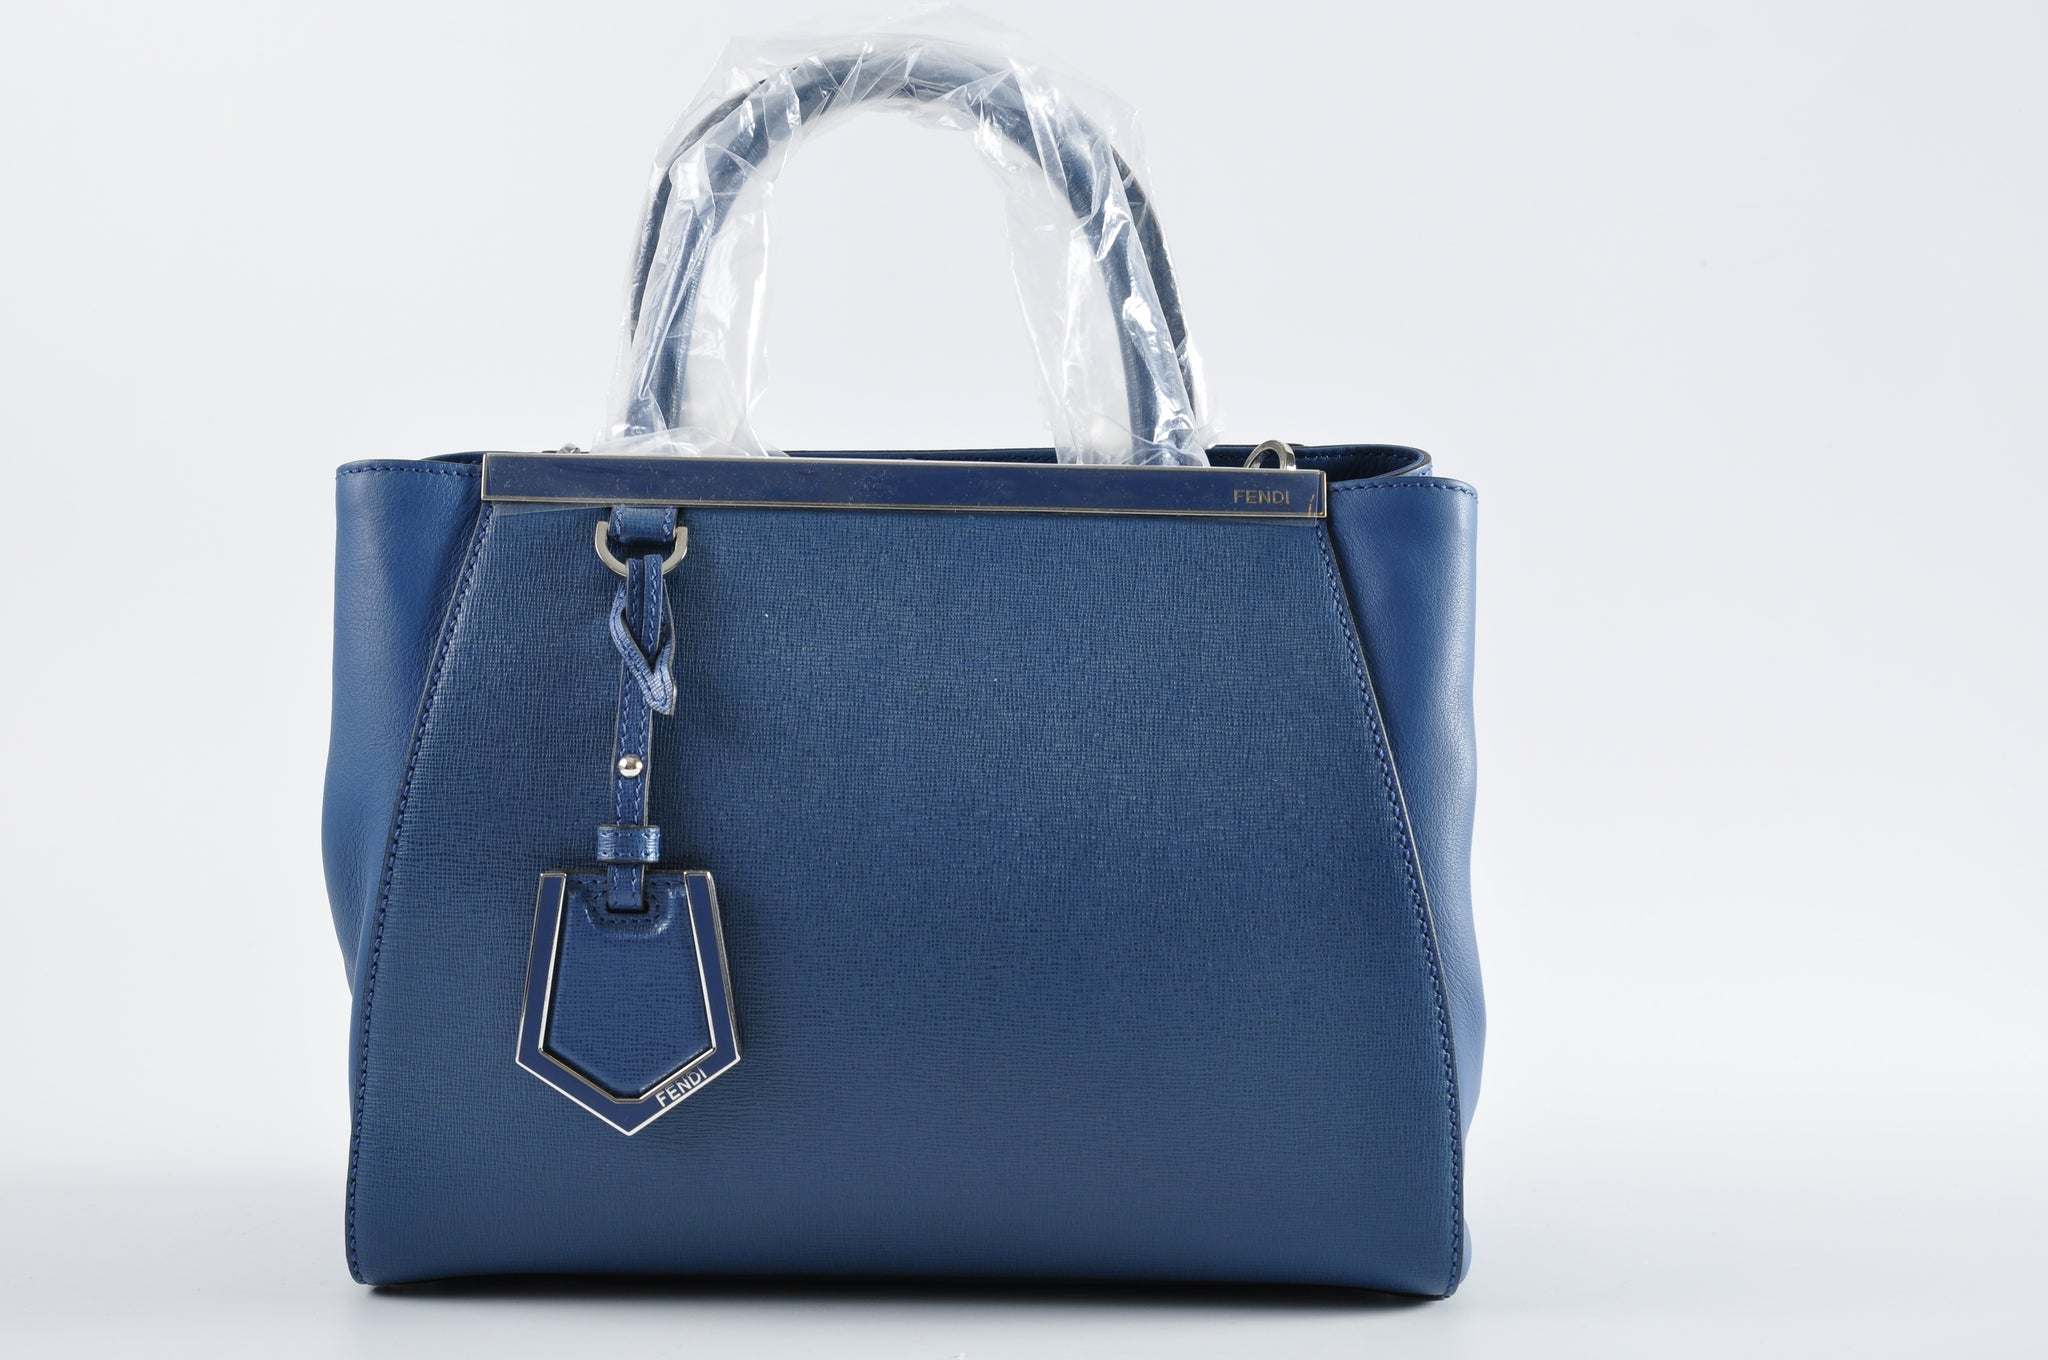 Fendi 2Jours Mini Tote Bag SM Vitello / Blu Cobalto + Palladio 8BH253